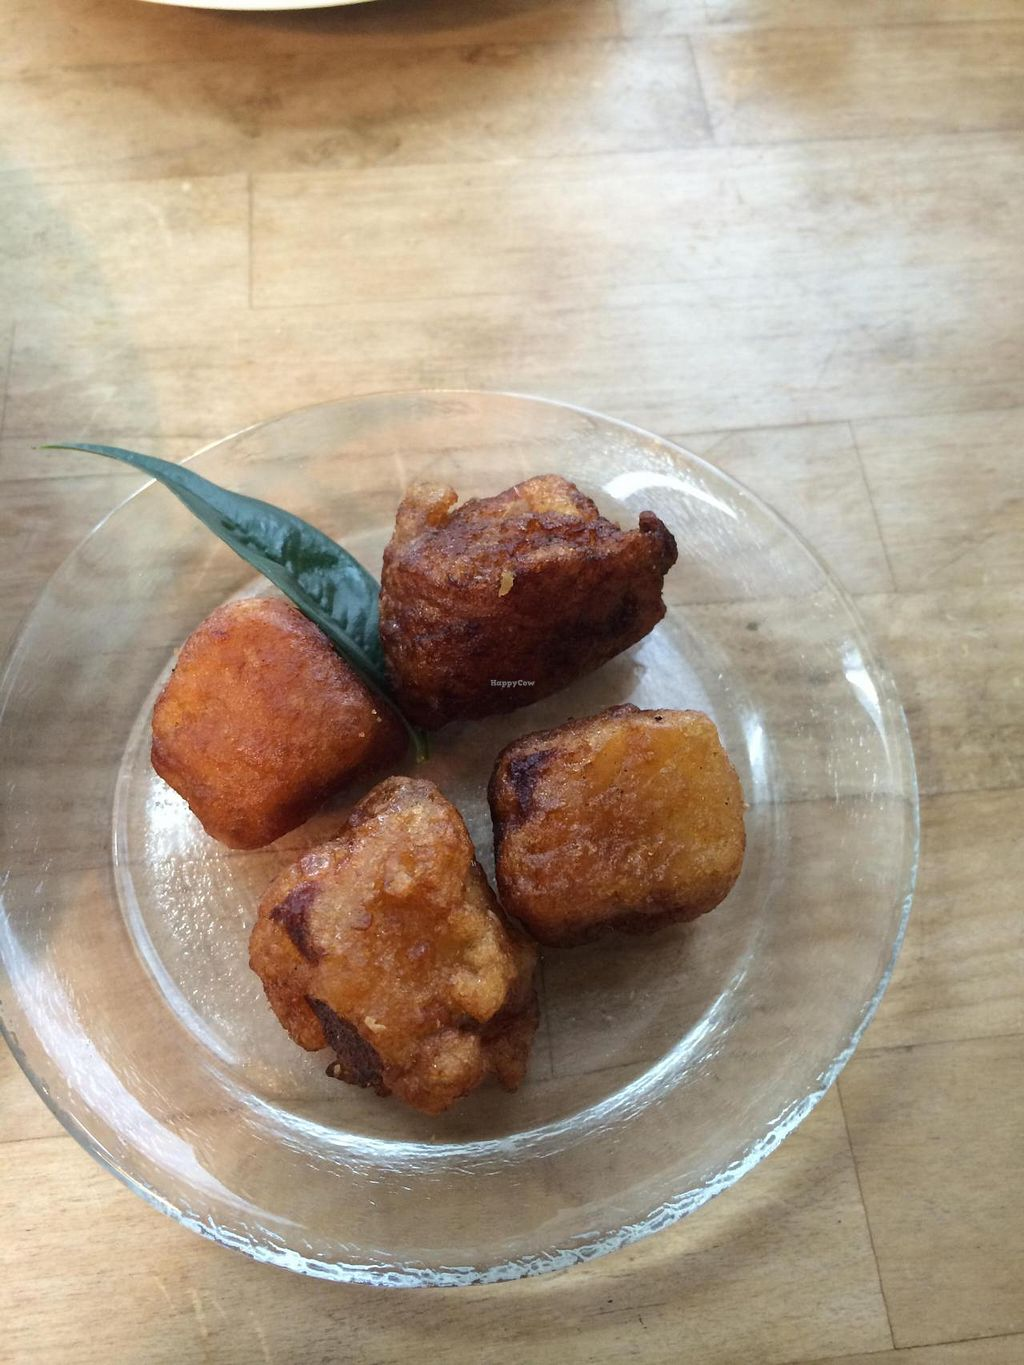 """Photo of Cafe Bonheur  by <a href=""""/members/profile/Vegeiko"""">Vegeiko</a> <br/>Koya tofu nugget <br/> October 7, 2014  - <a href='/contact/abuse/image/52034/82384'>Report</a>"""